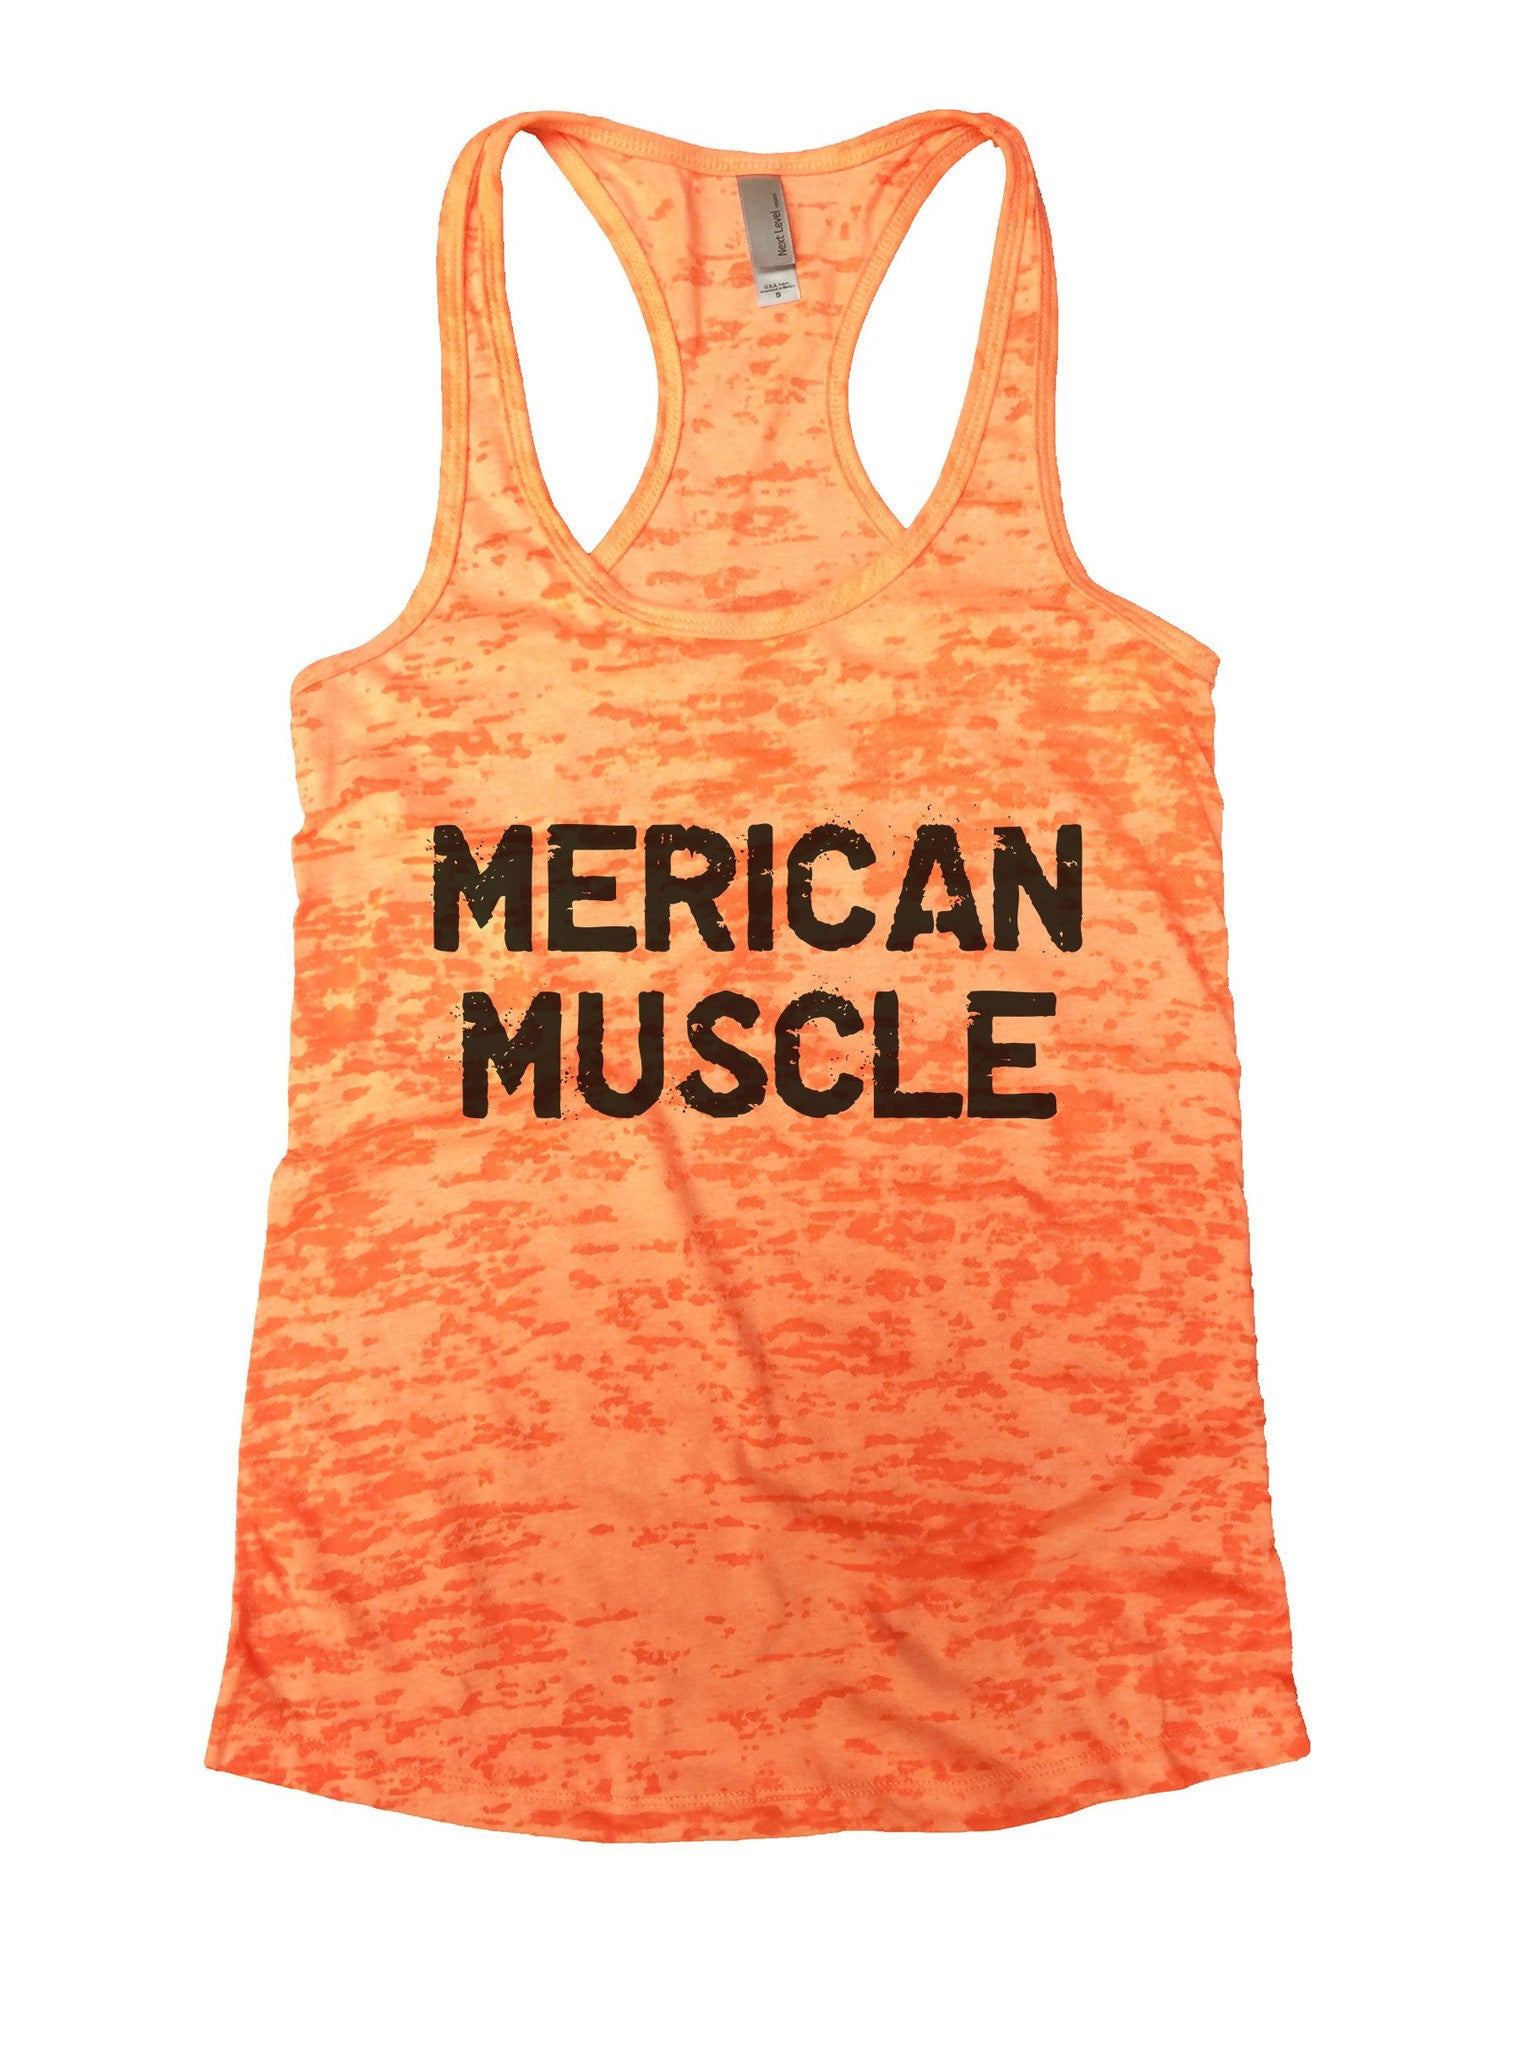 Merican Muscle Burnout Tank Top By BurnoutTankTops.com - 1022 - Funny Shirts Tank Tops Burnouts and Triblends  - 3